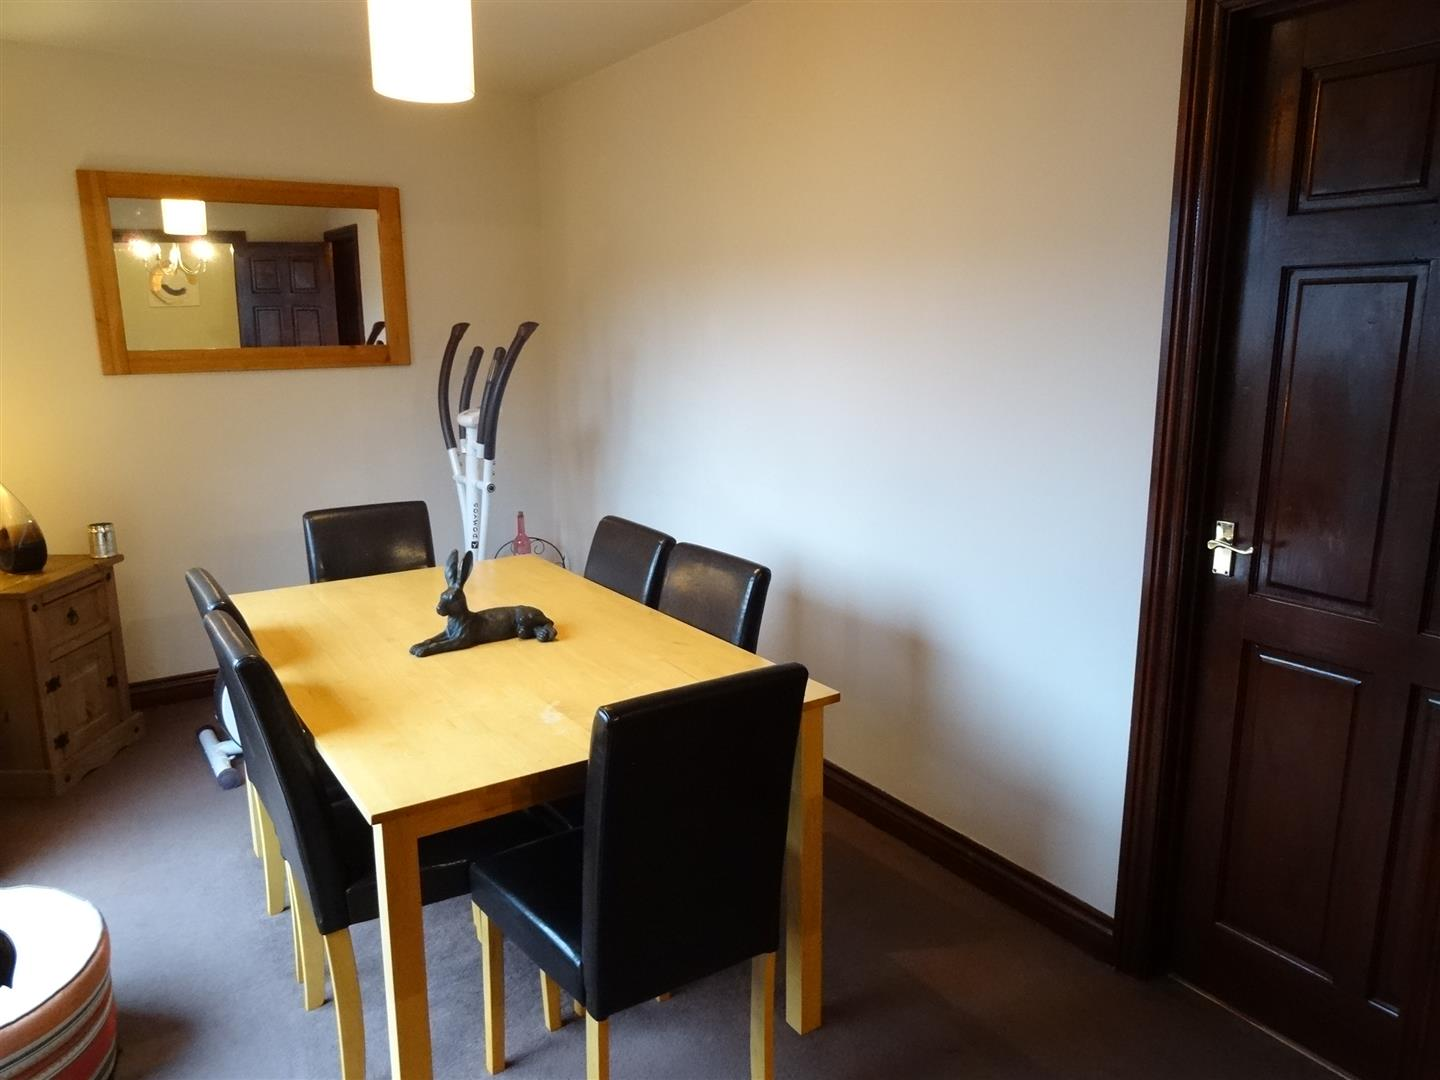 3 Bedrooms House - detached For Sale